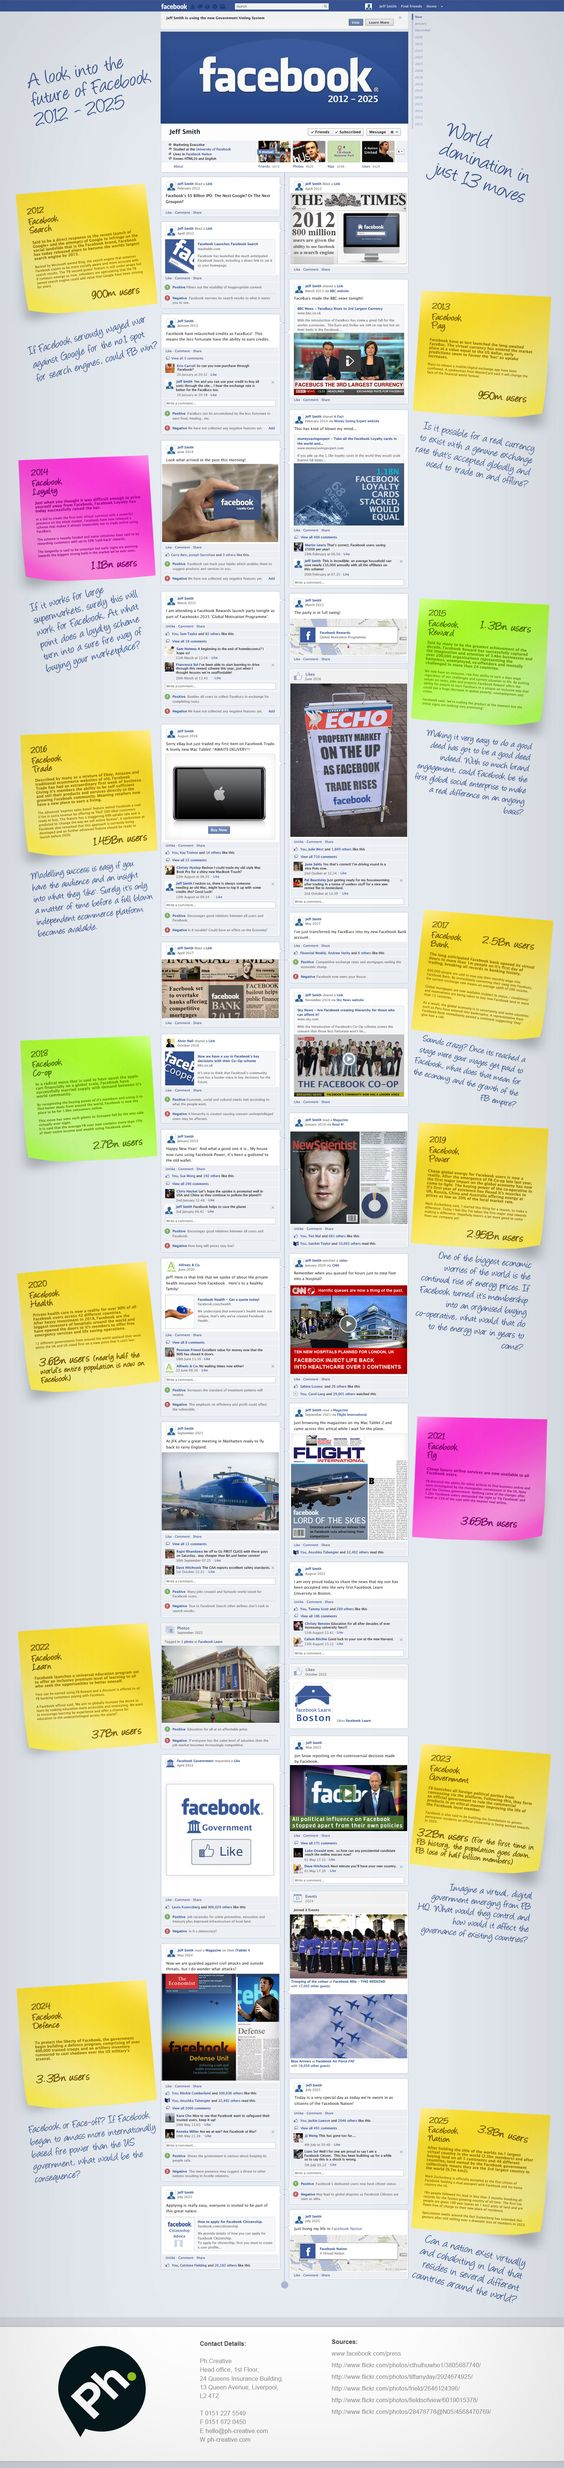 A look into the future of Facebook 2012 - 2025